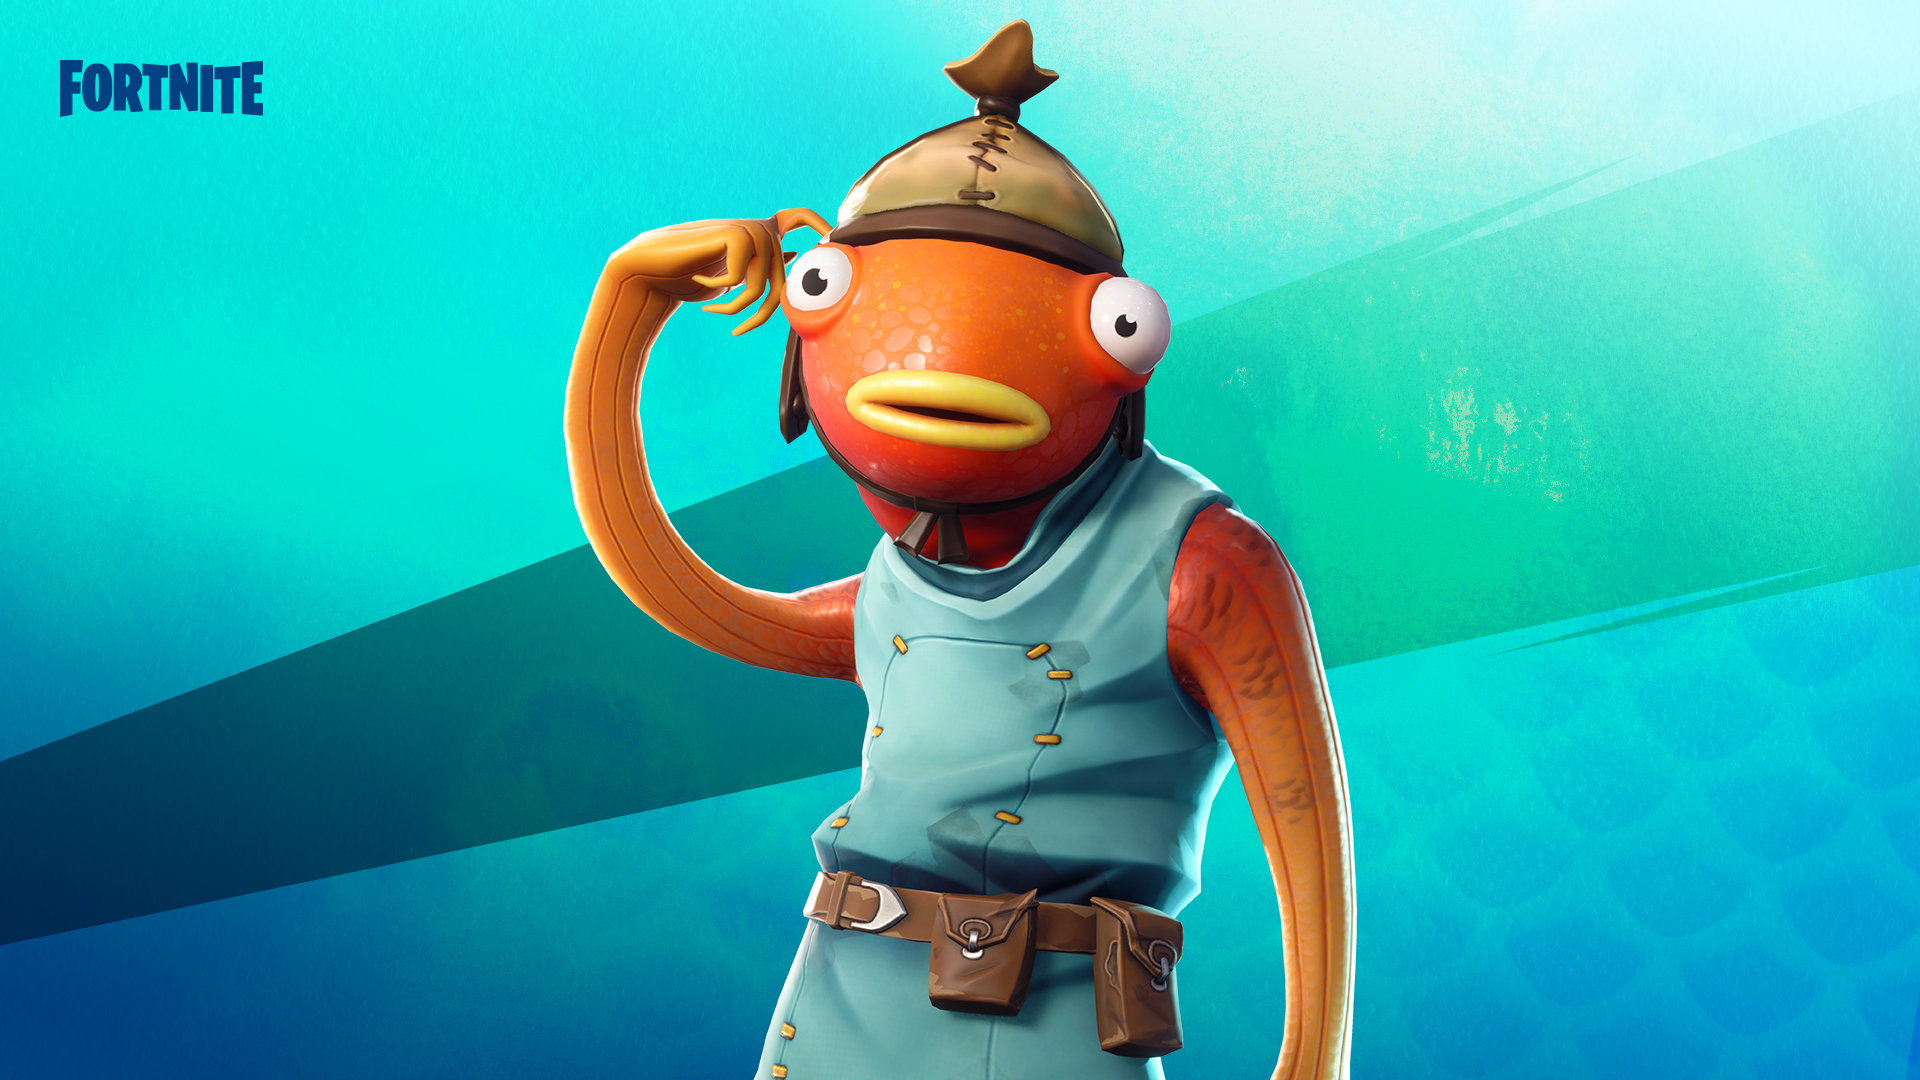 Fortnite On Twitter Fish Are Friends Grab The Fishstick Outfit In The Item Shop Now